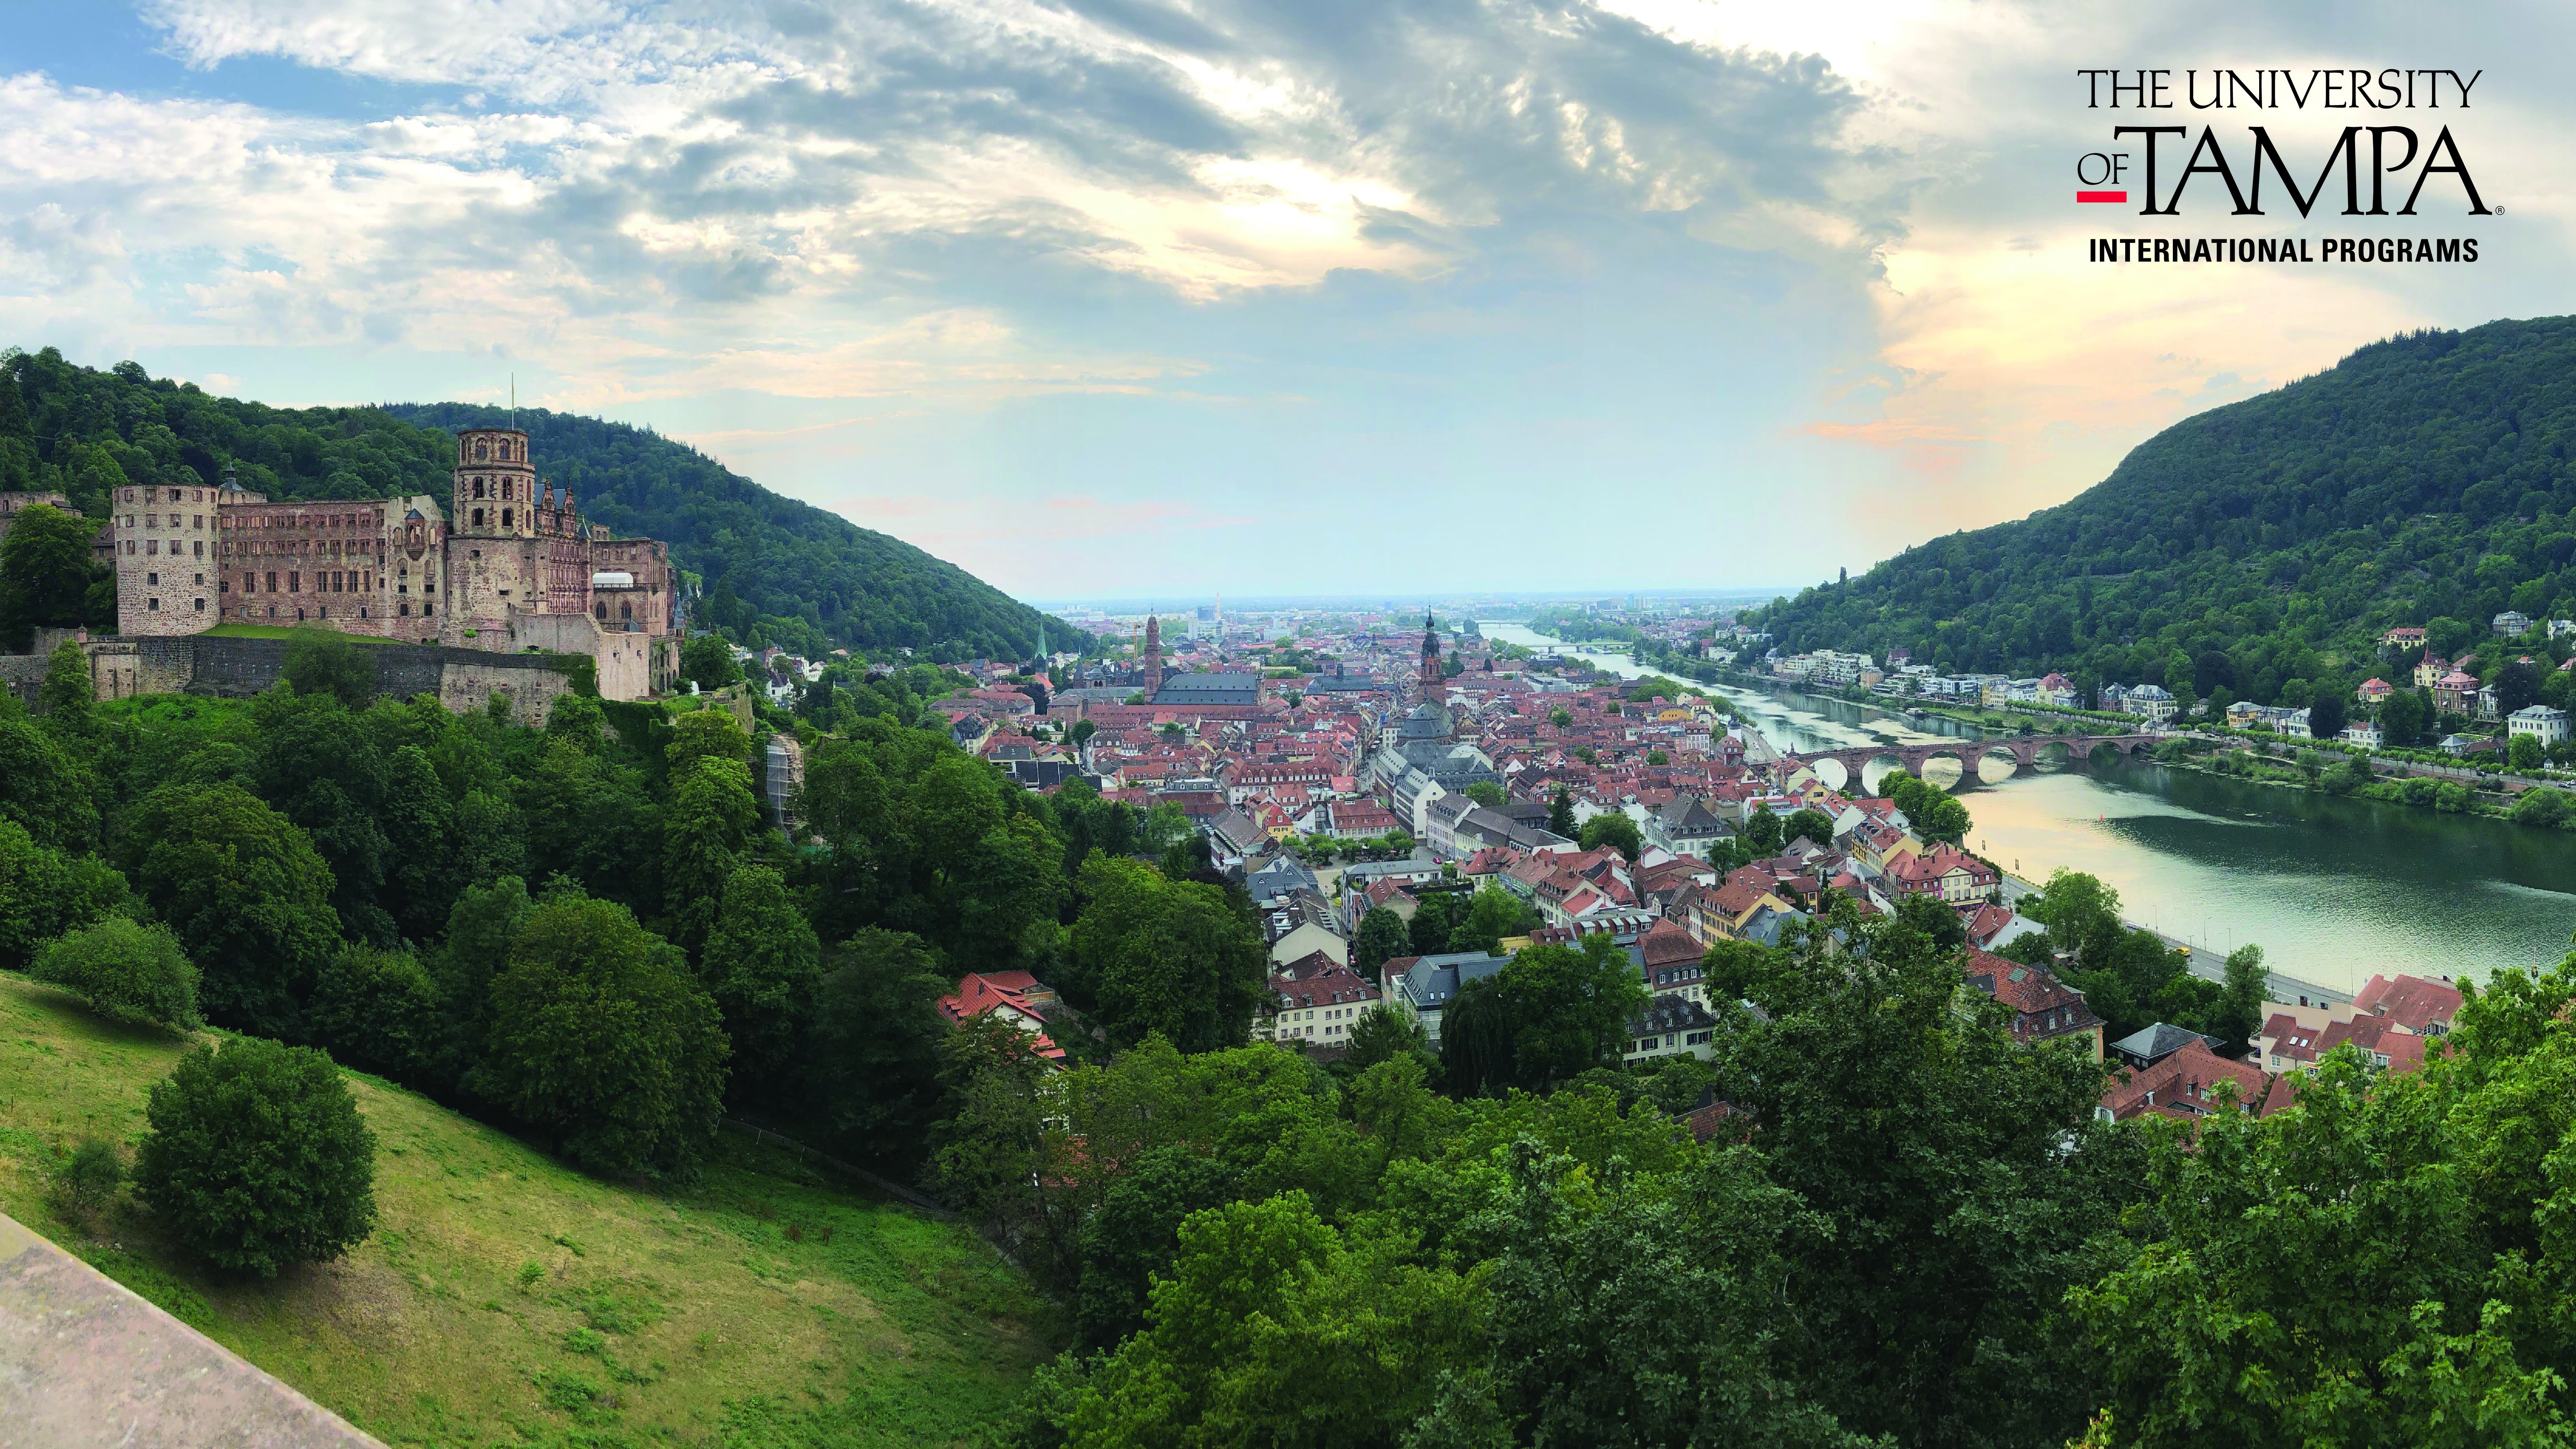 Castle overlooking the town of Heidelberg, Germany (Photographer: Mark Colvenbach, Director, Career Services)